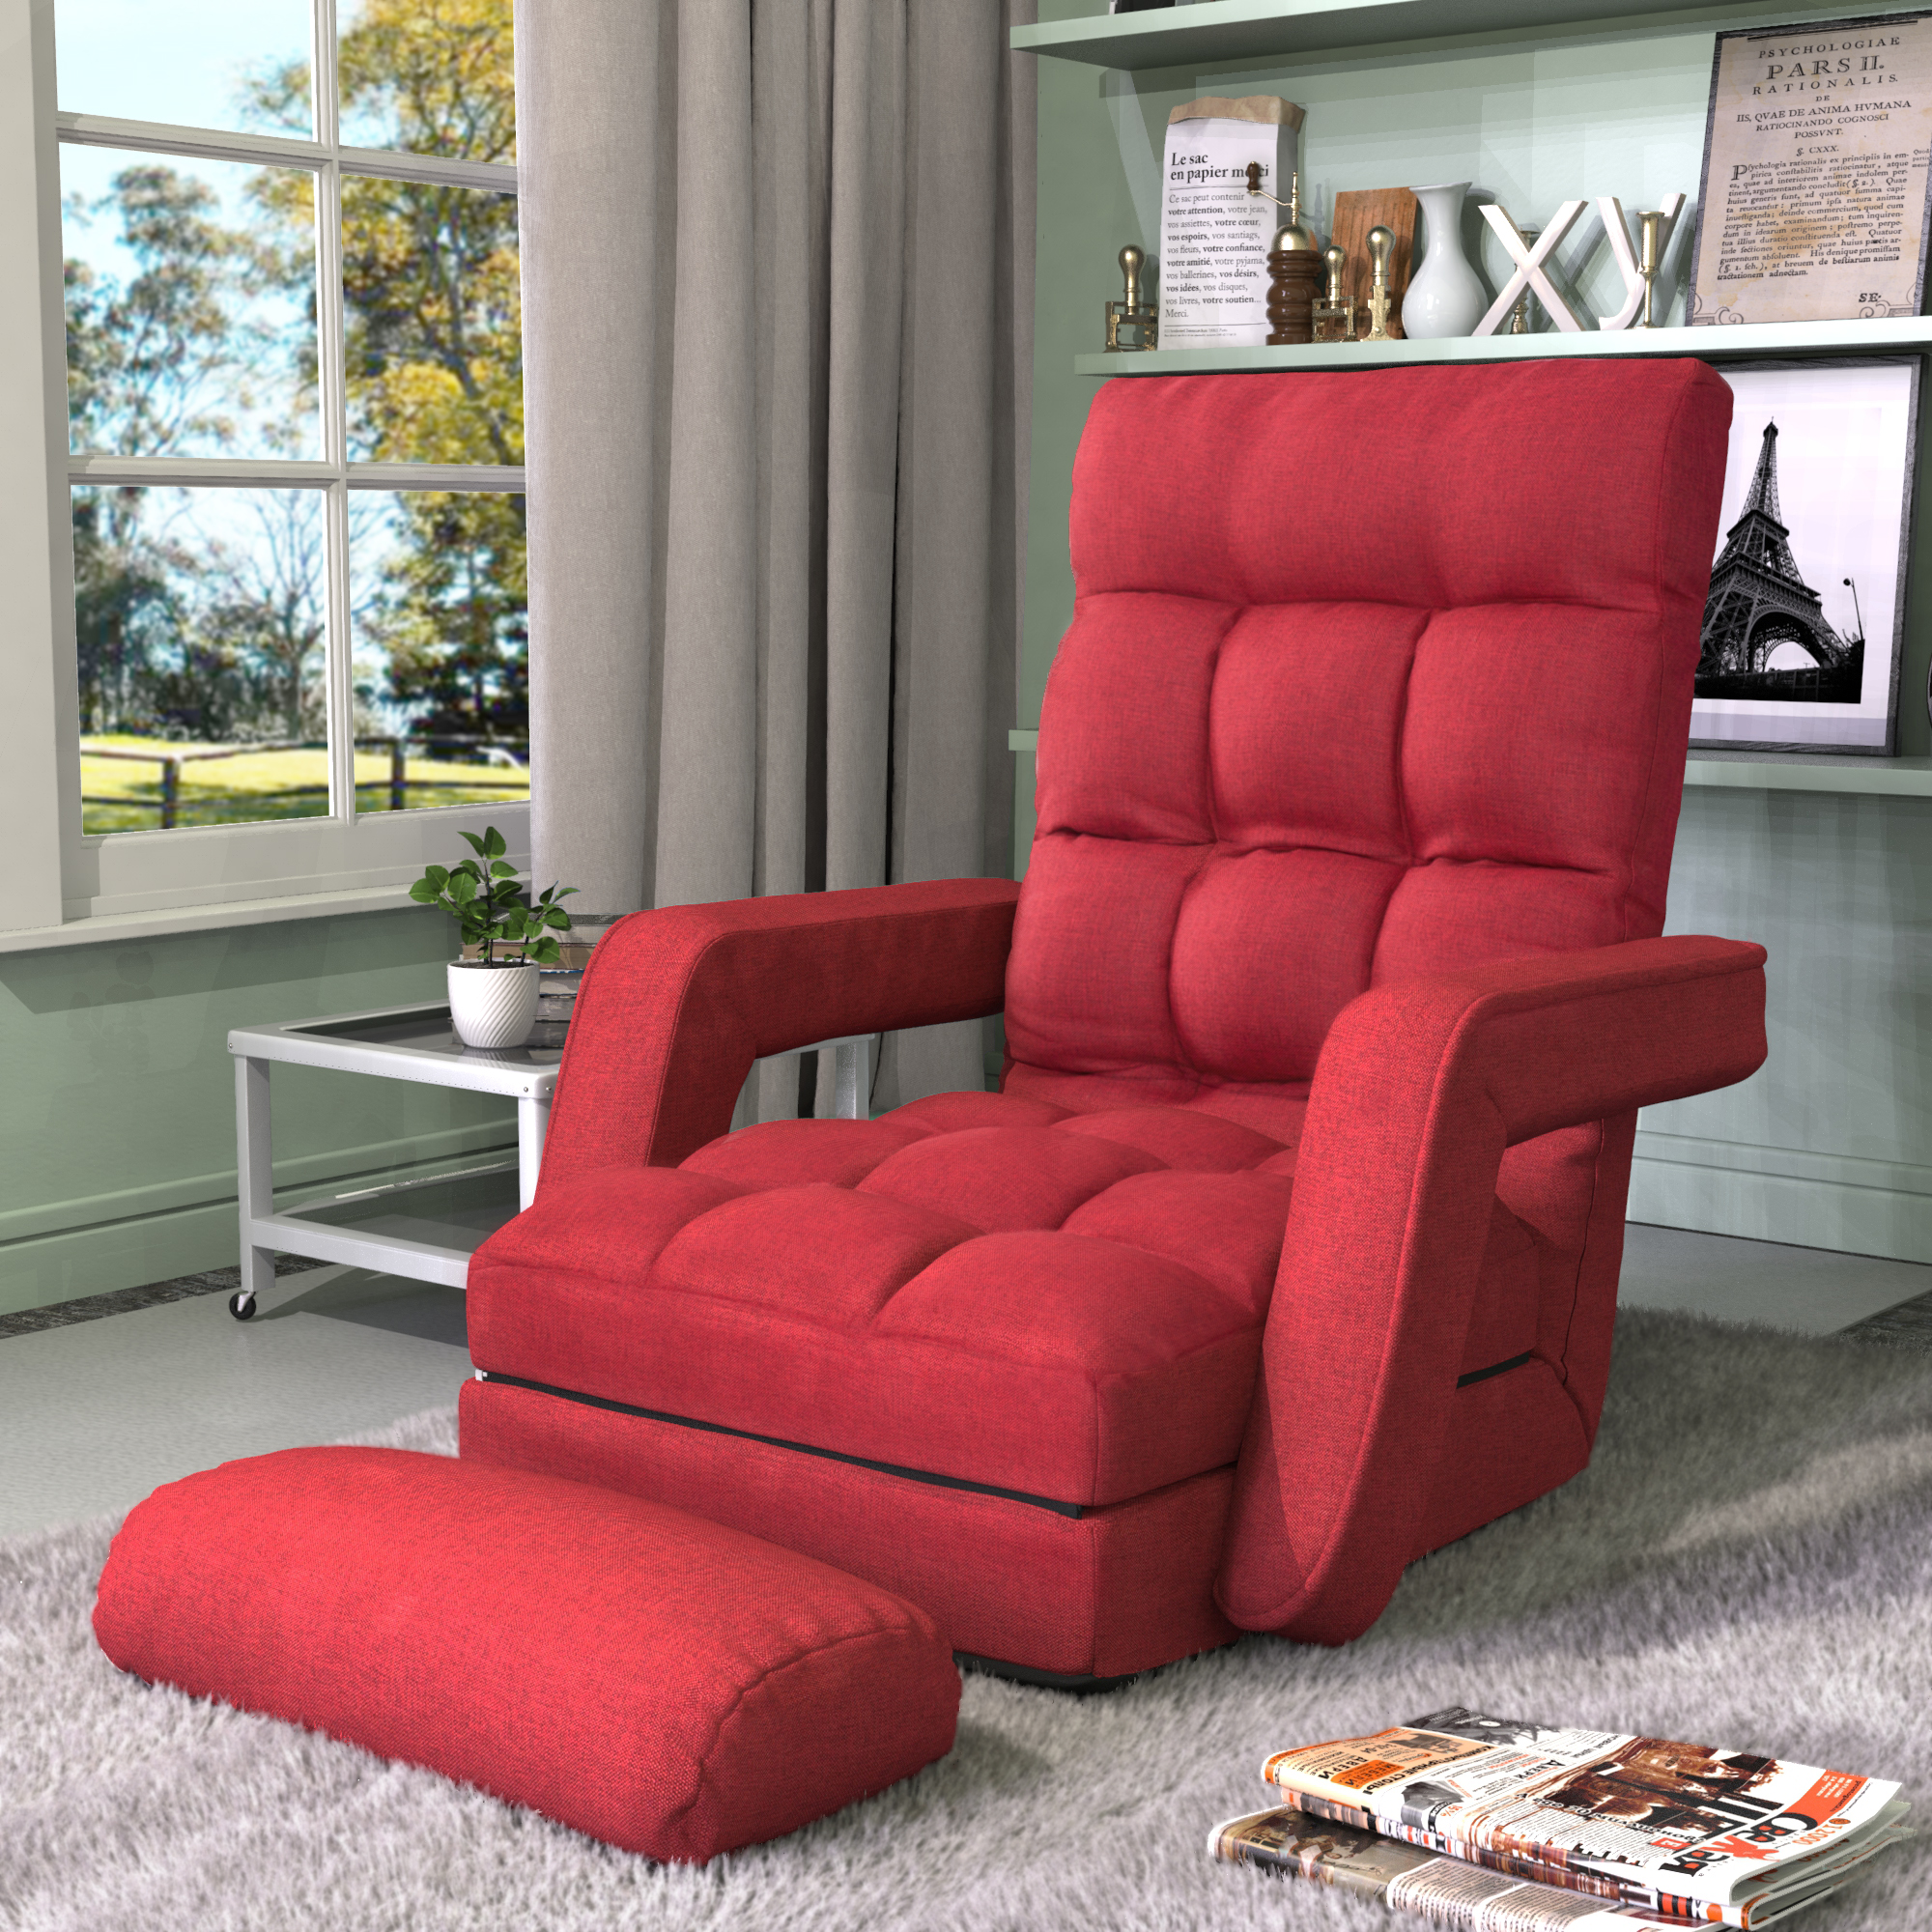 Idee Renovation Salon modern floor couch chair set, foldable floor cushions seating lazy sofa for  adults teens kids, floor chairs with 5 angle adjustable back support for